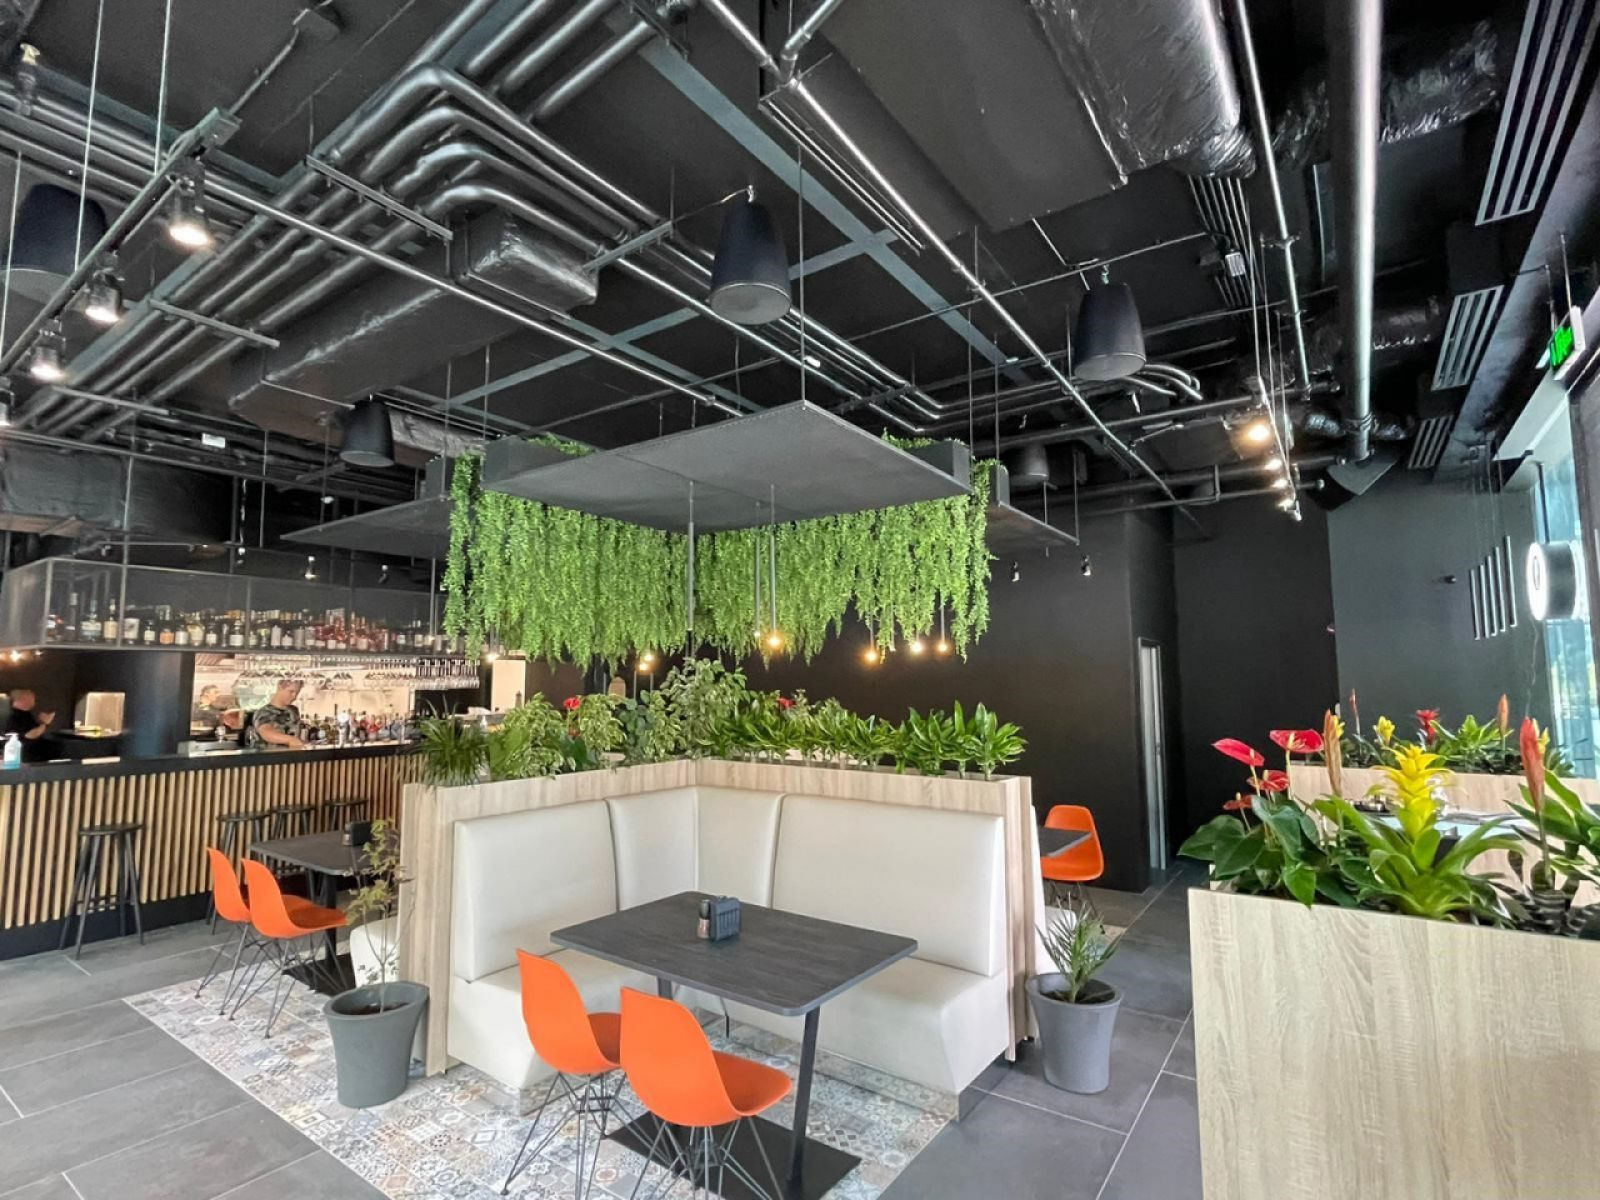 Meat2Eat opened a restaurant on the ground floor of One Tower office building